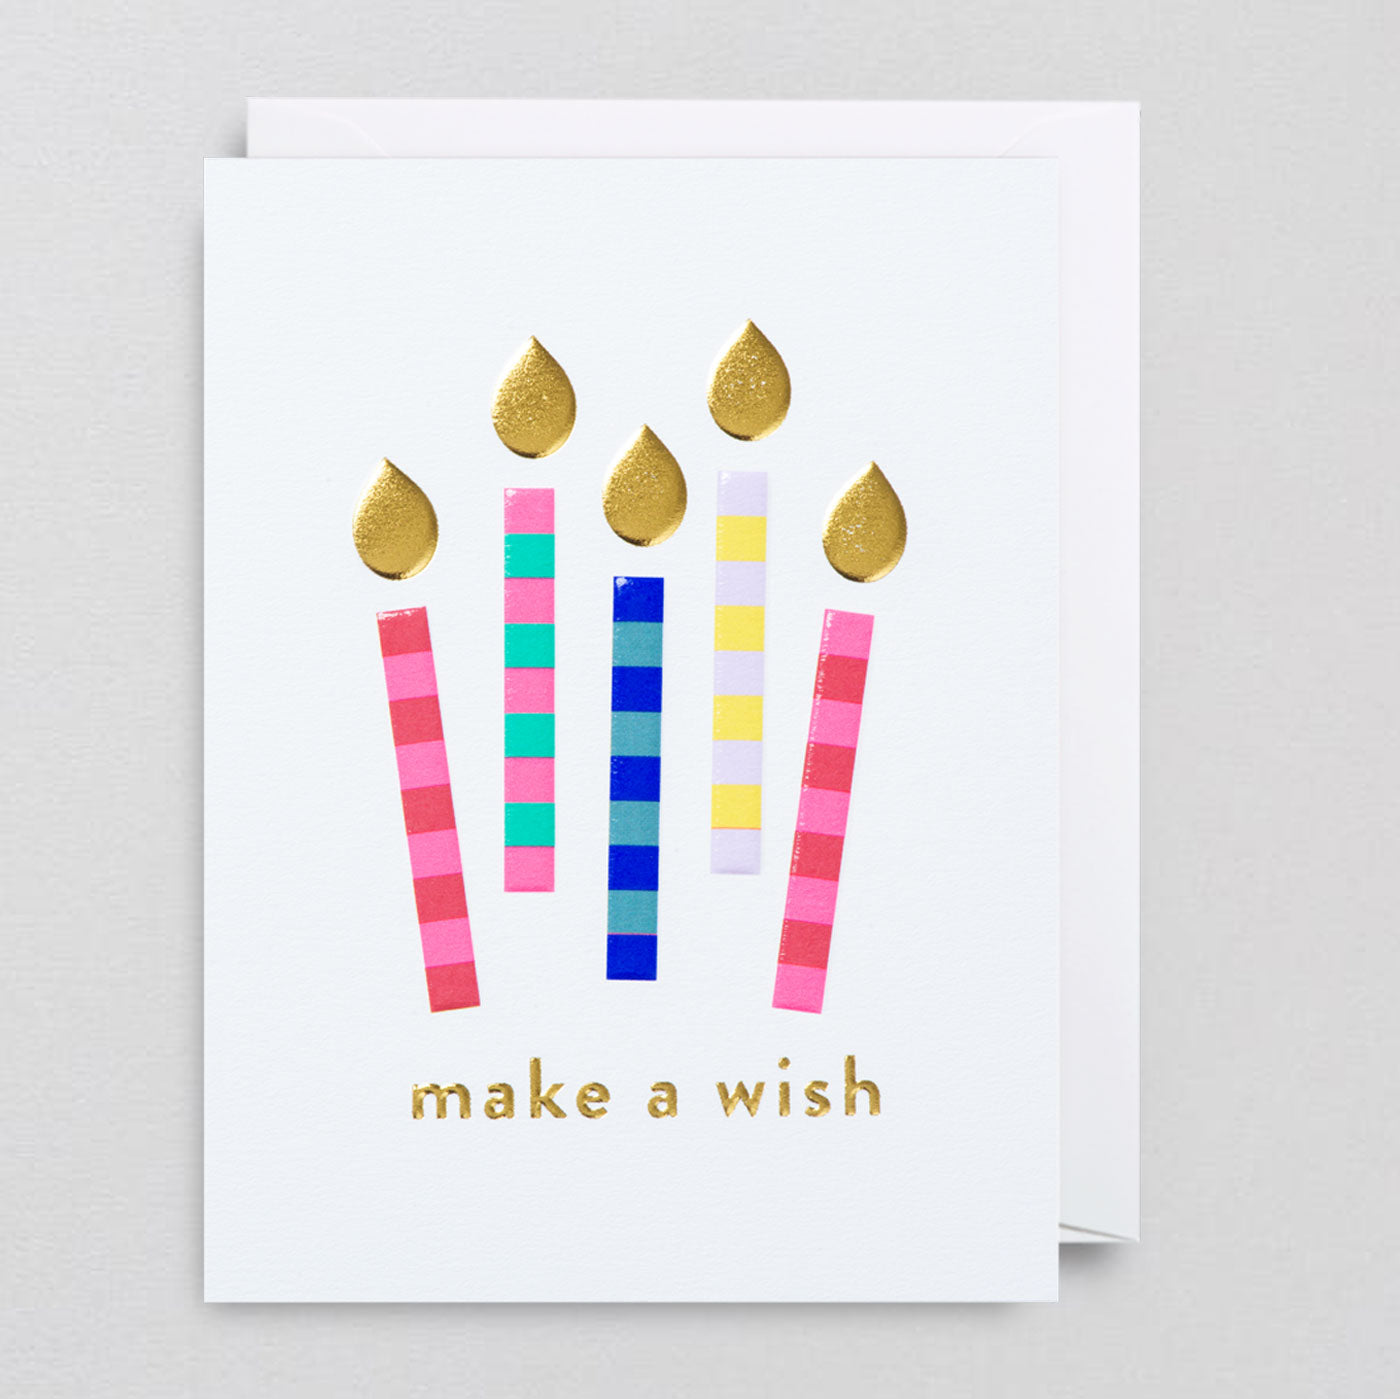 Make a Wish by Cozy for Lagom